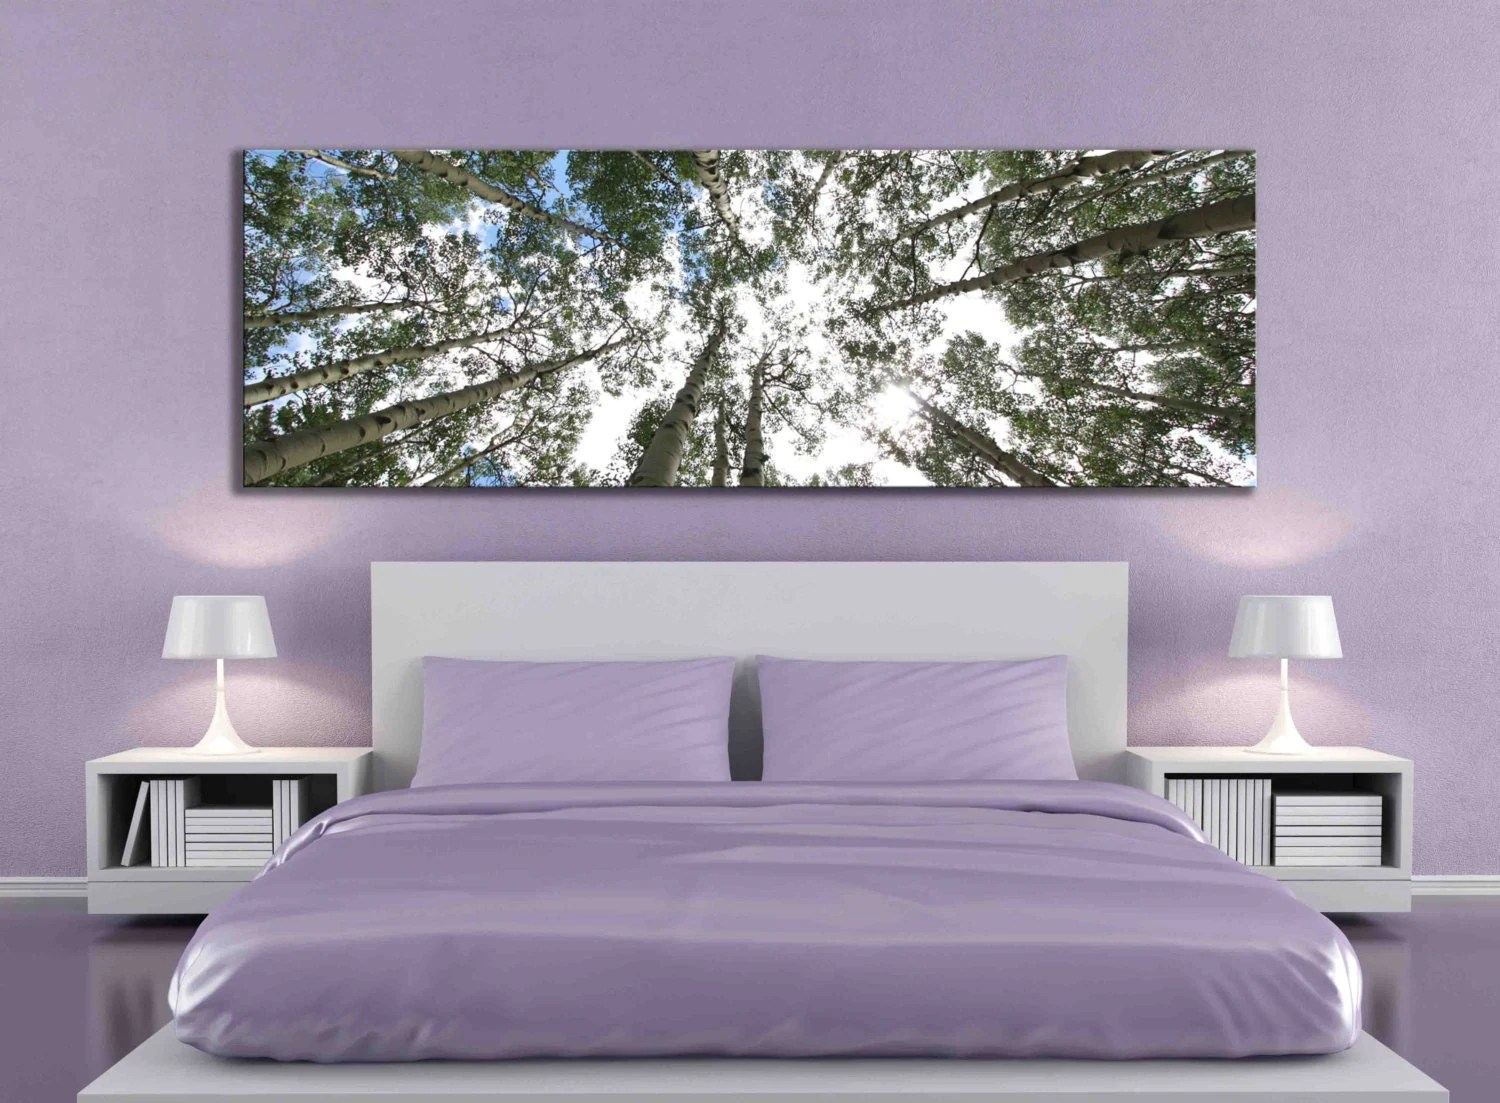 Wall Art Behind Bed Big Aspen Tree Photograph Large Panoramic Canvas Print Nature